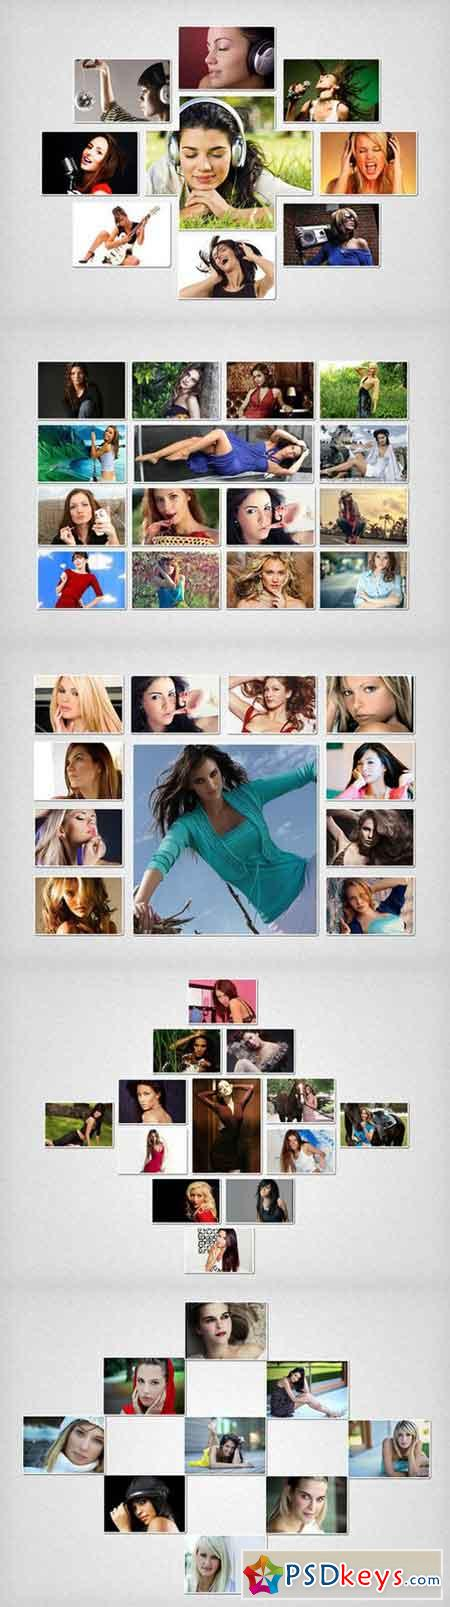 Photo Collage Template 03 730806